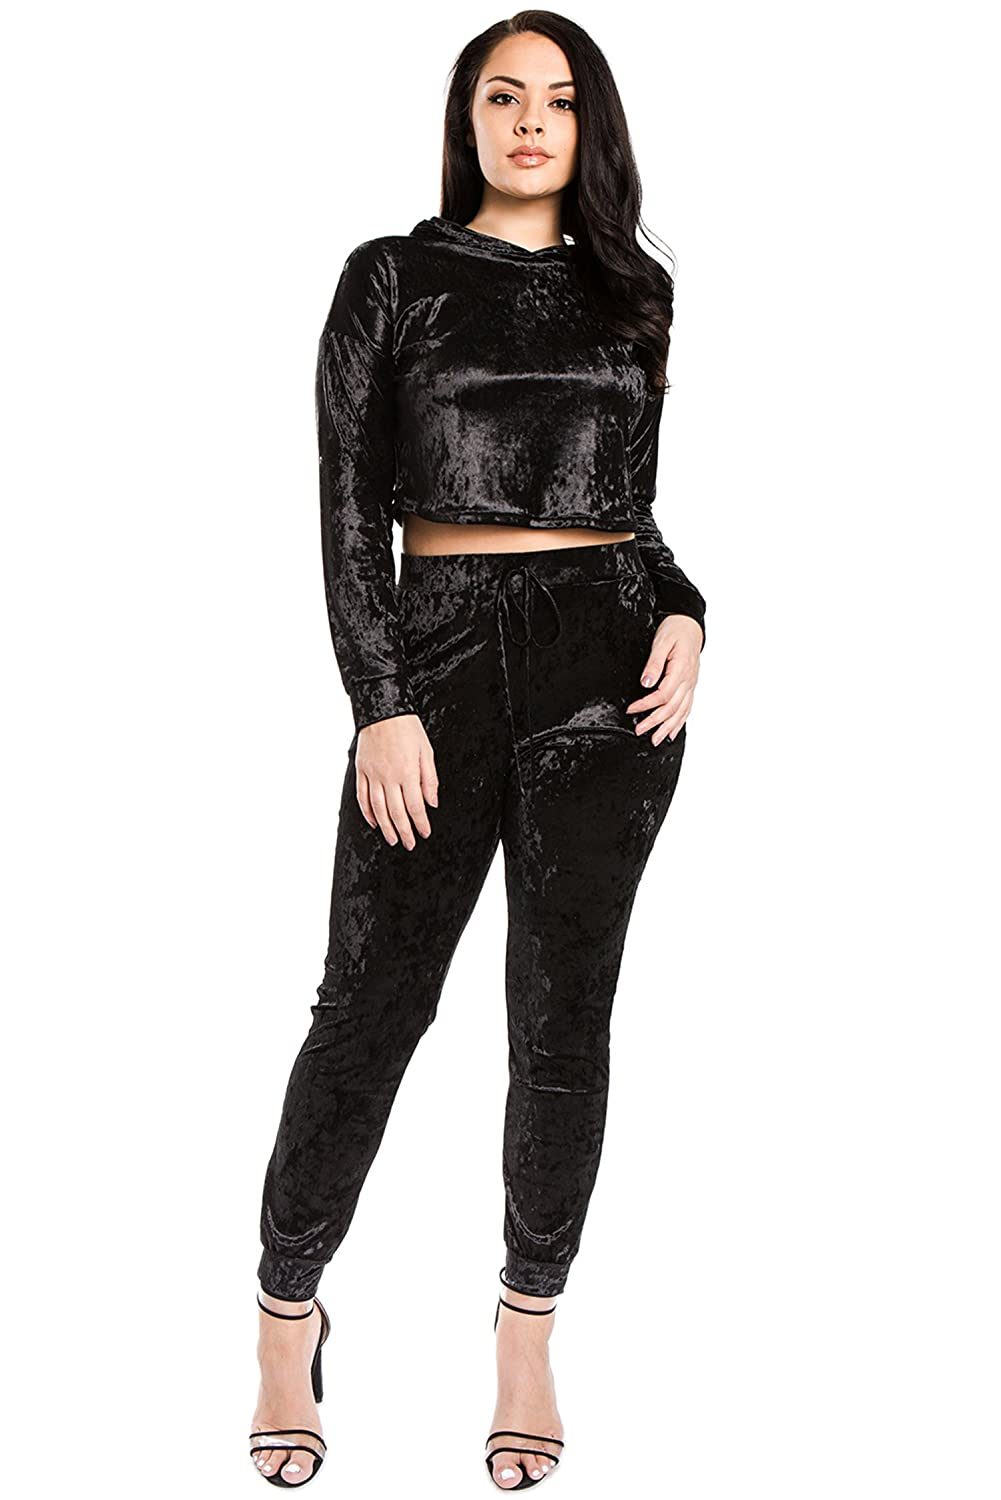 f3756918124 Soft and shimmery crushed velvet two-piece fashion tracksuit with premium  and luxurious feel. Long sleeve cropped hoodie top and jogger pants with  high ...